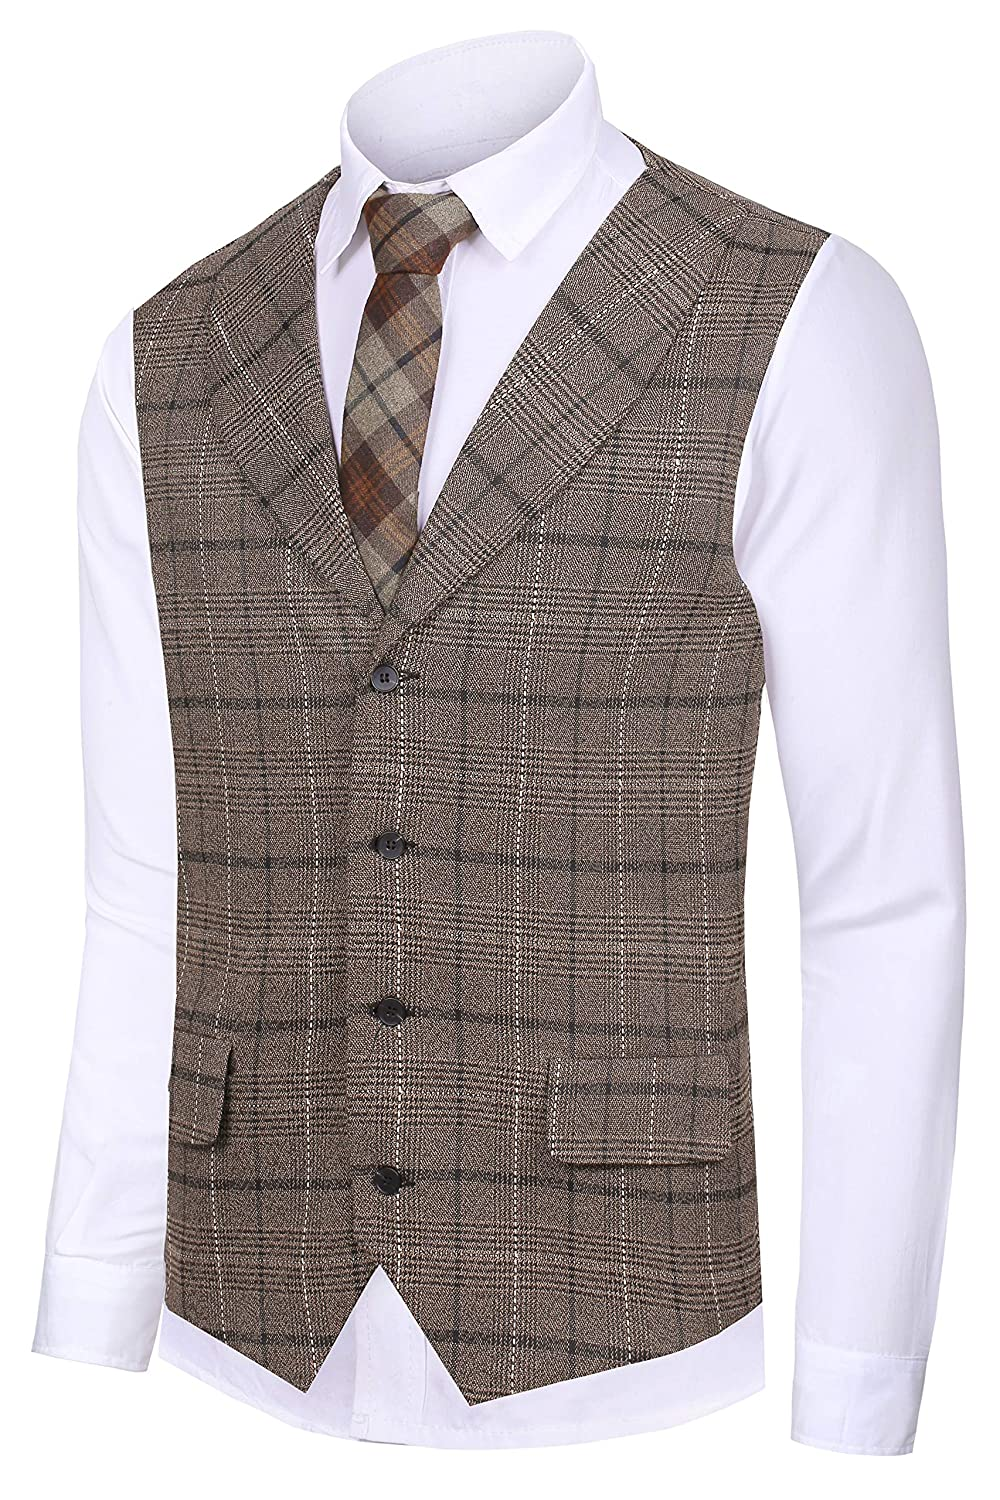 Men's Steampunk Clothing, Costumes, Fashion Hanayome Mens Gentleman Top Design Casual Waistcoat Business Suit Vest VS17 $29.90 AT vintagedancer.com